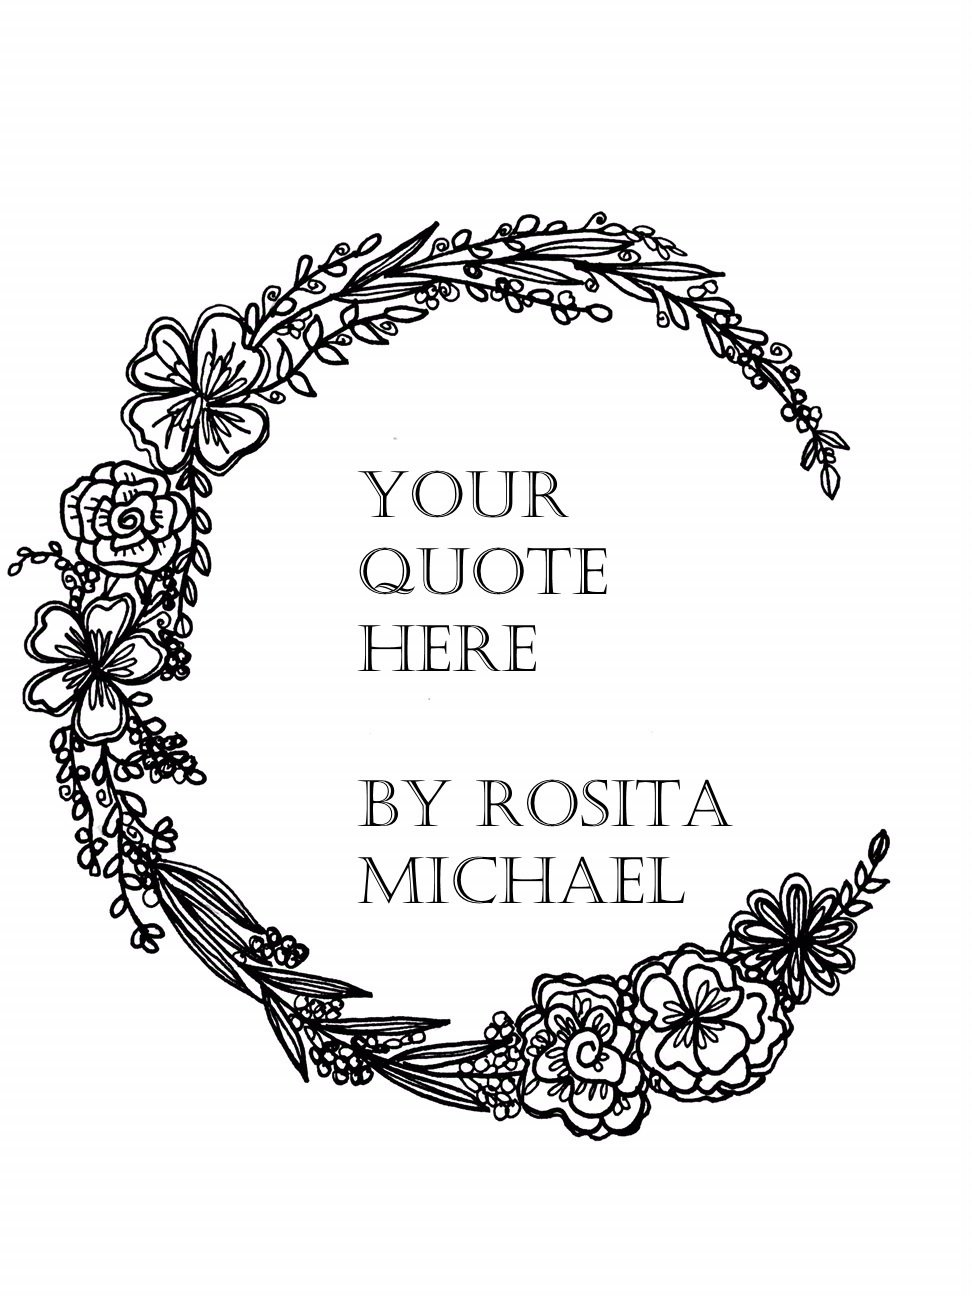 picture about Wreath Printable identified as Hand-drawn floral wreath printable with personalized wordings